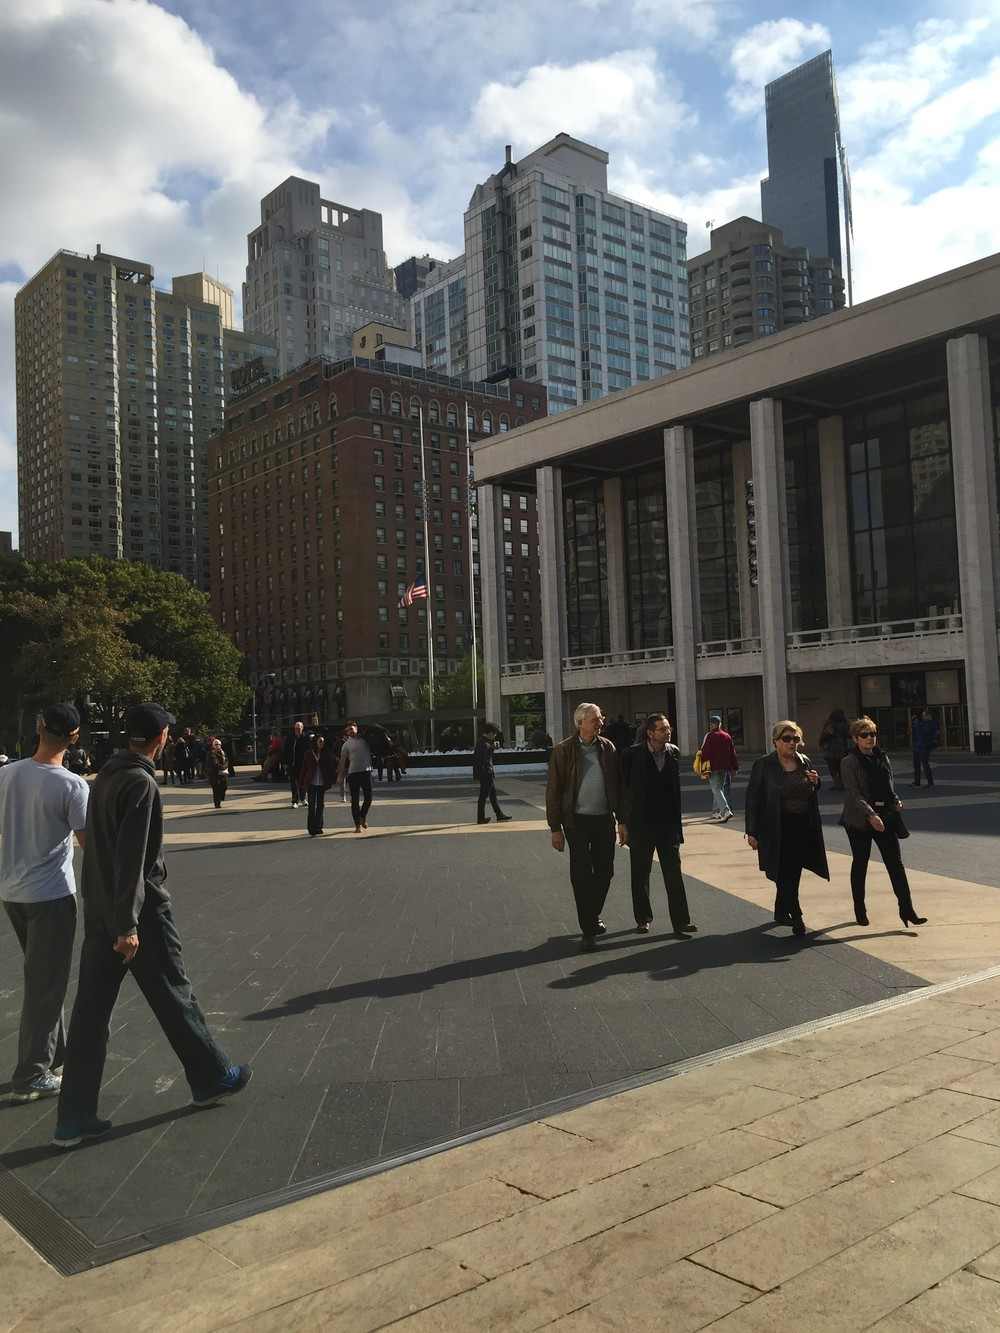 The best part? Lincoln Center is our campus.